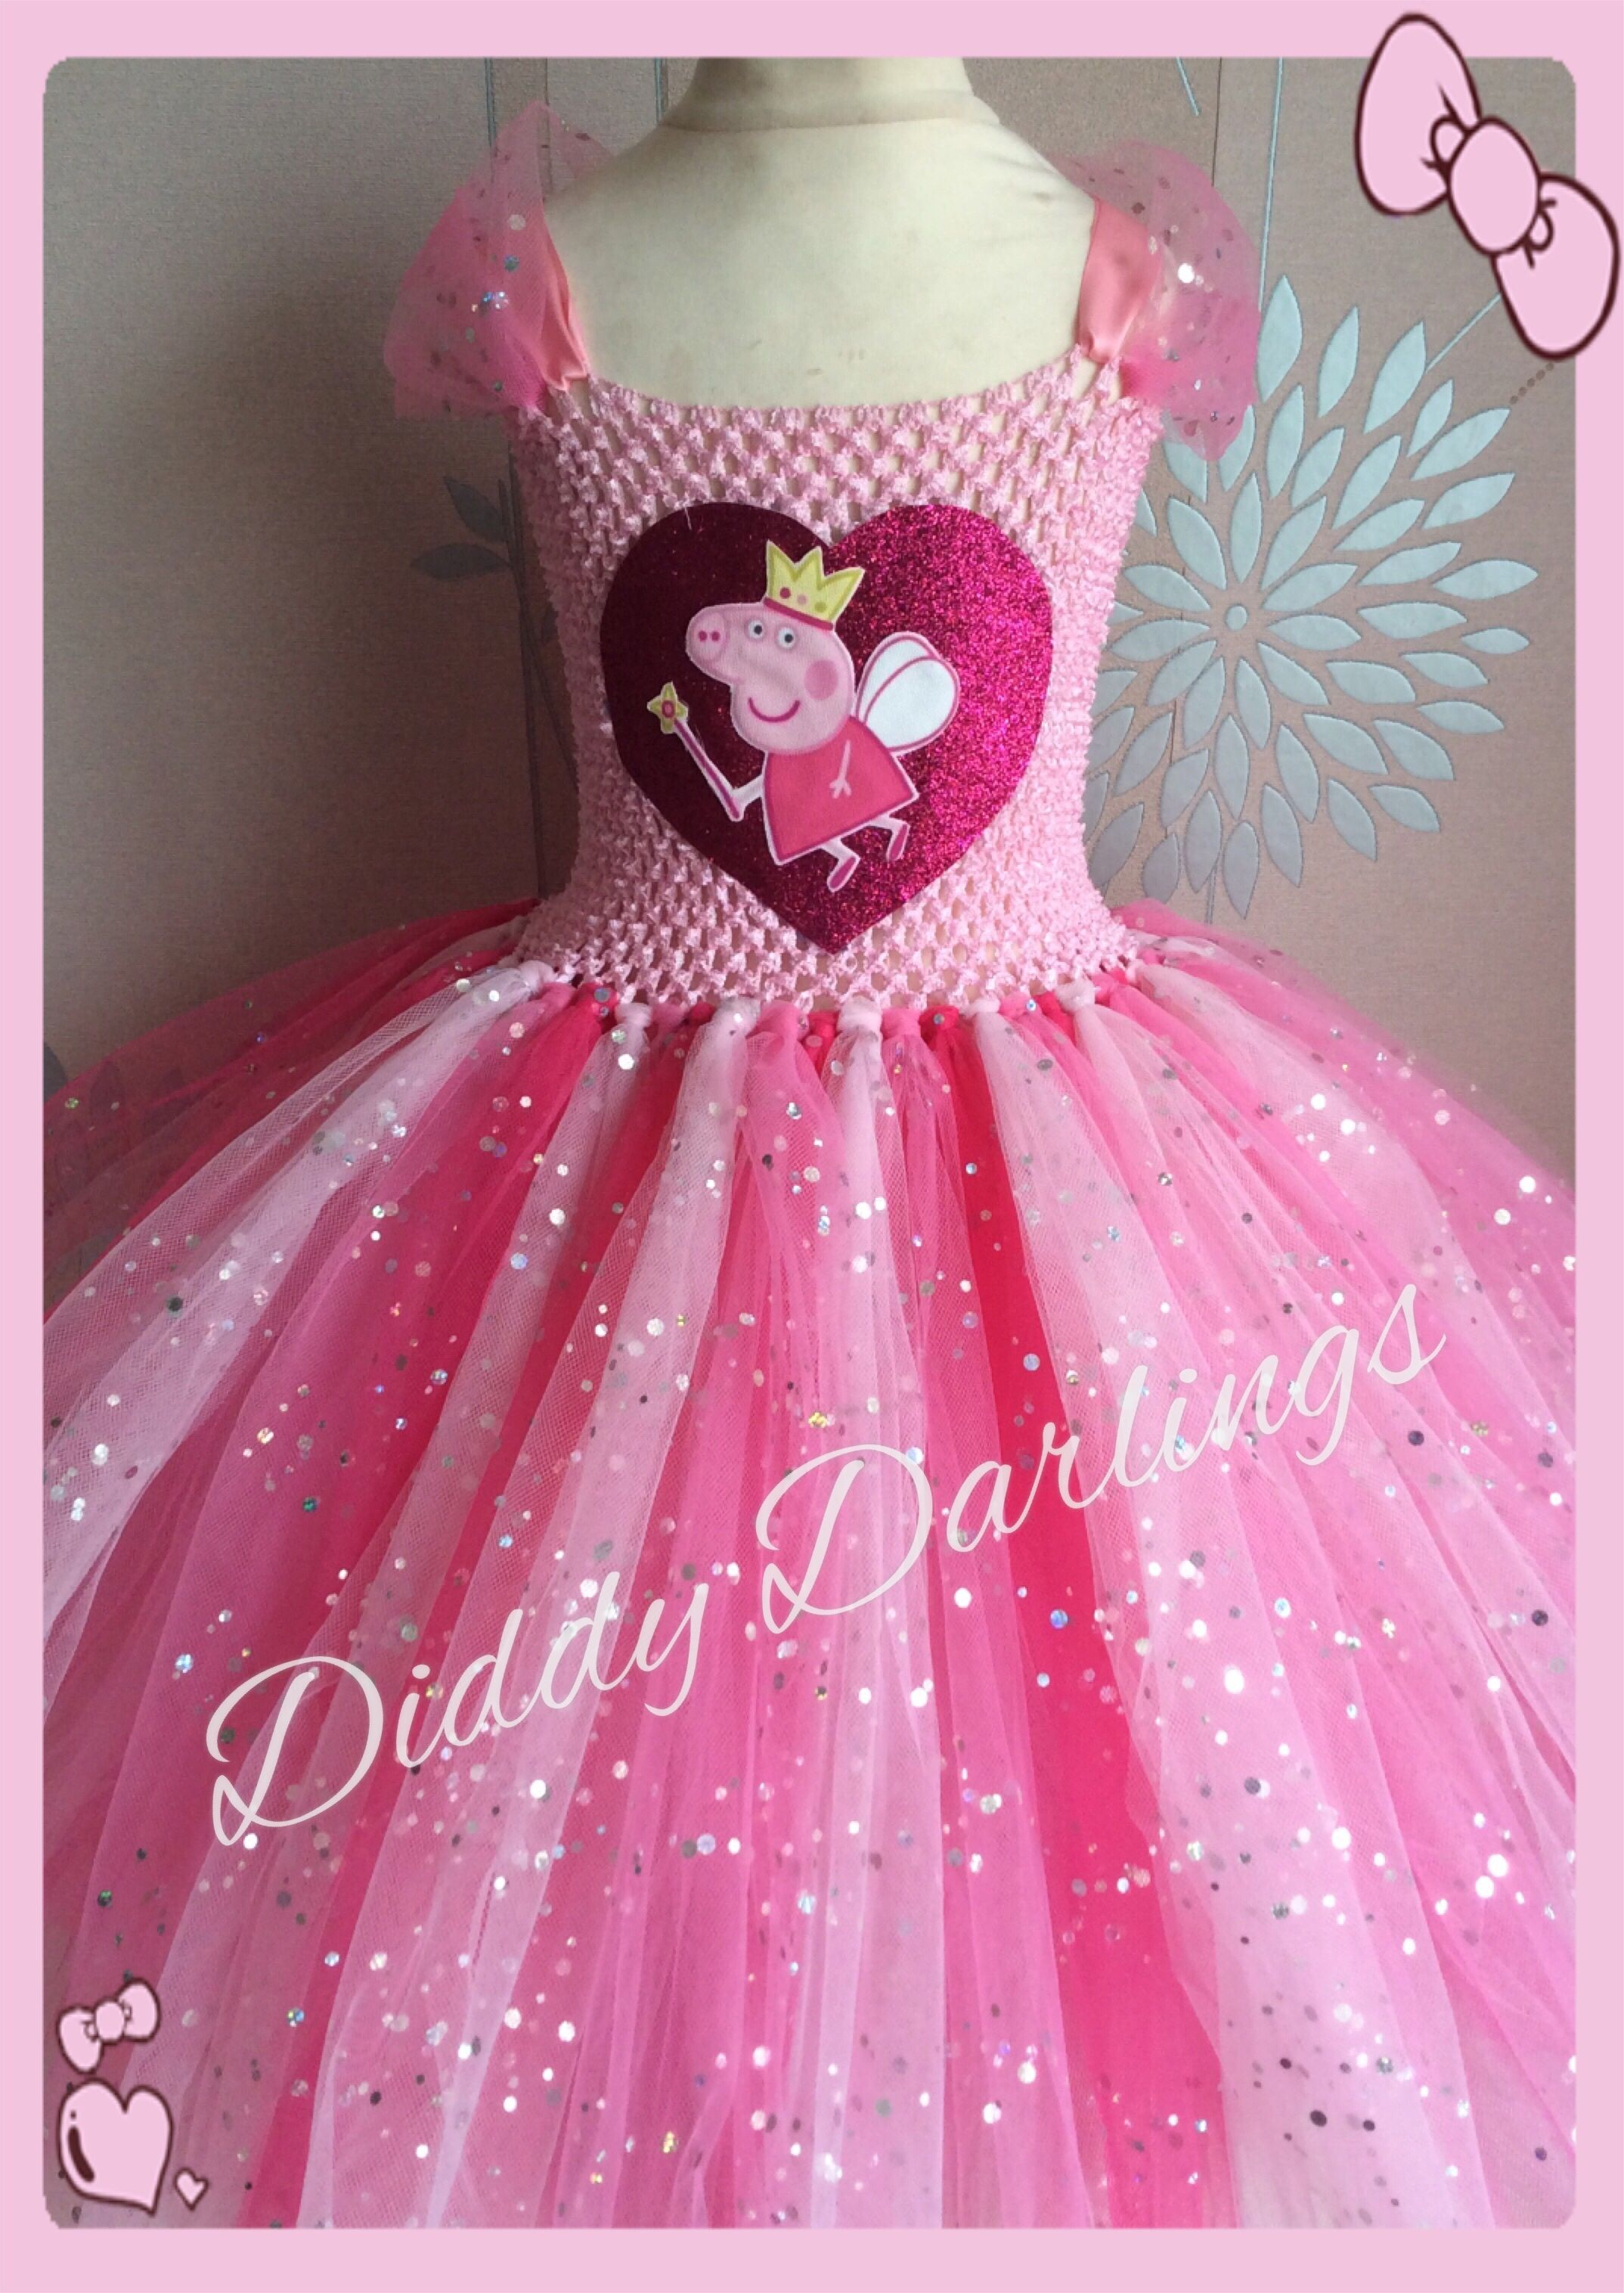 534a35d92f1e Peppa Pig Tutu Dress. Sparkly Peppa Pig Dress. Beautiful & lovingly  handmade.